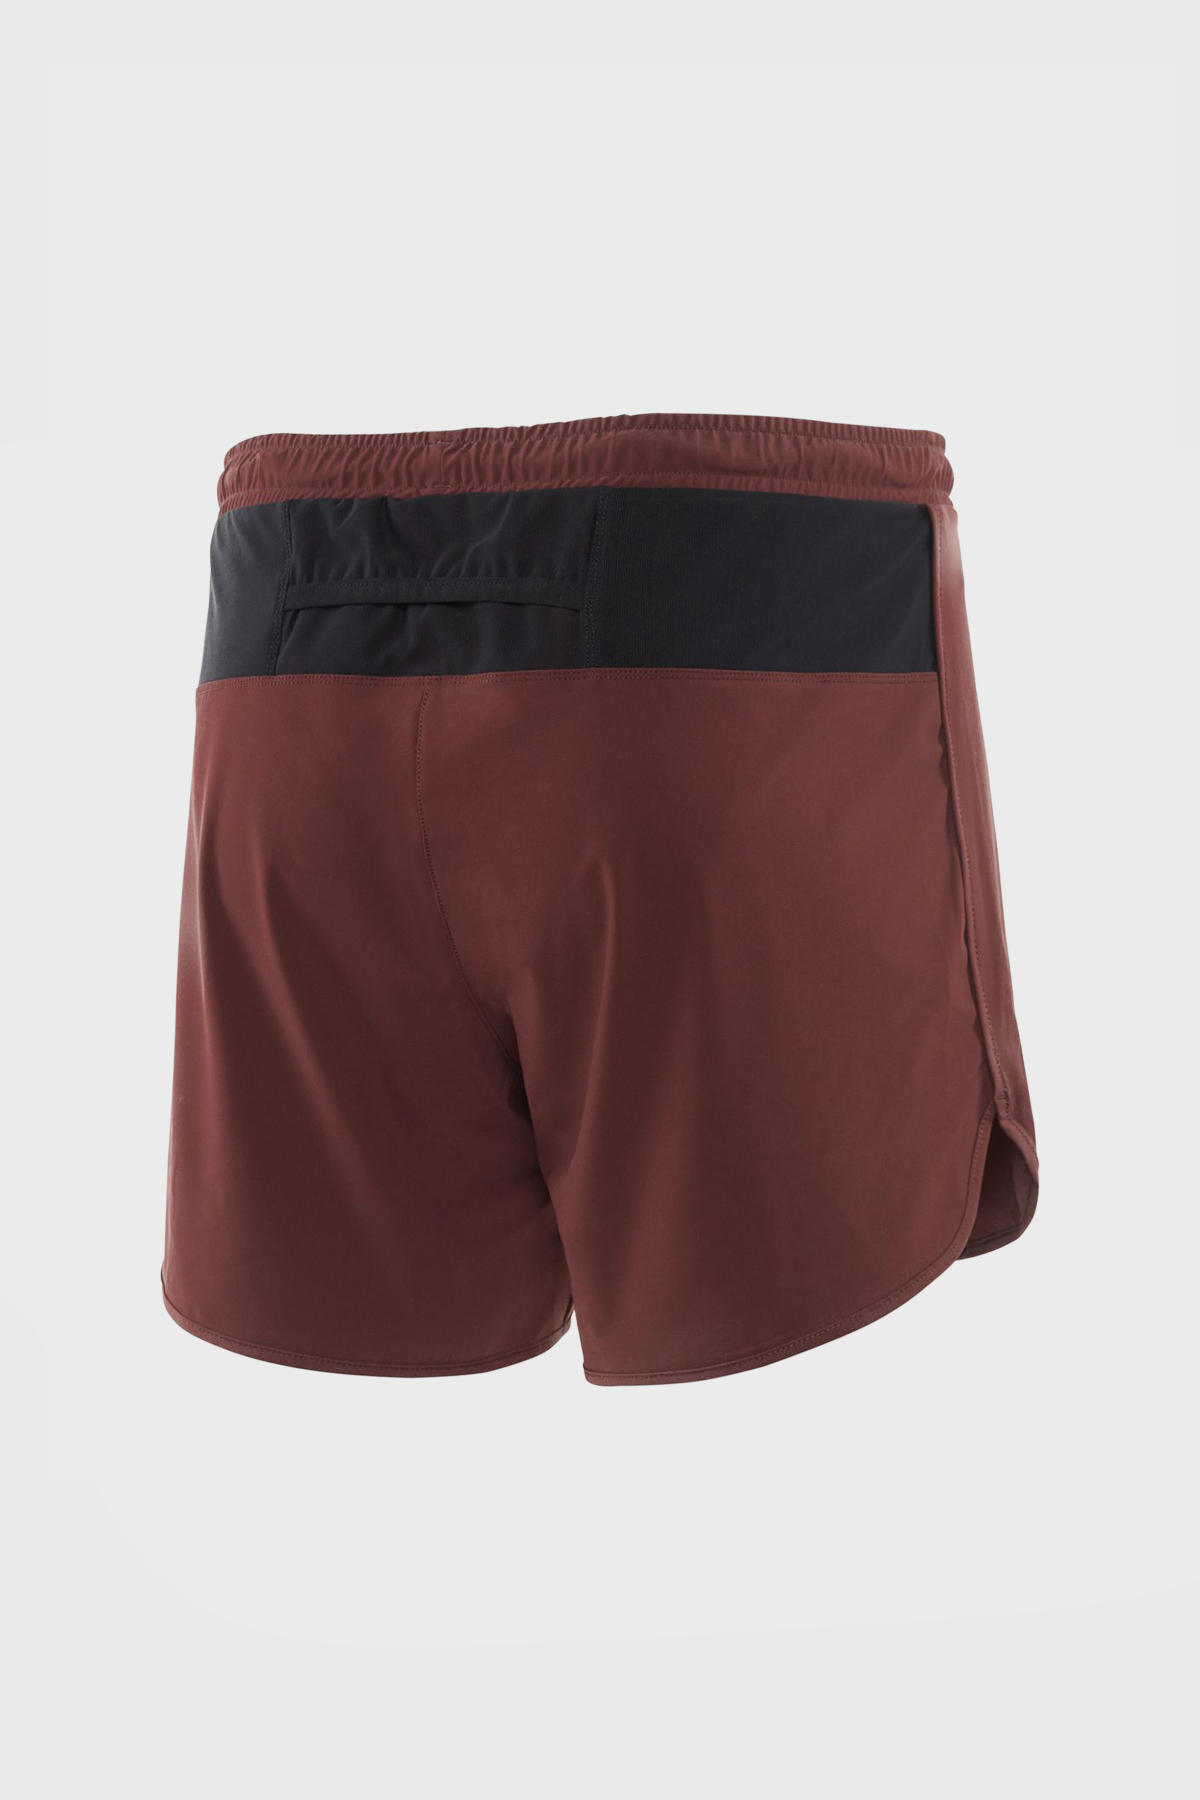 District Vision - Spino training shorts - burgundy